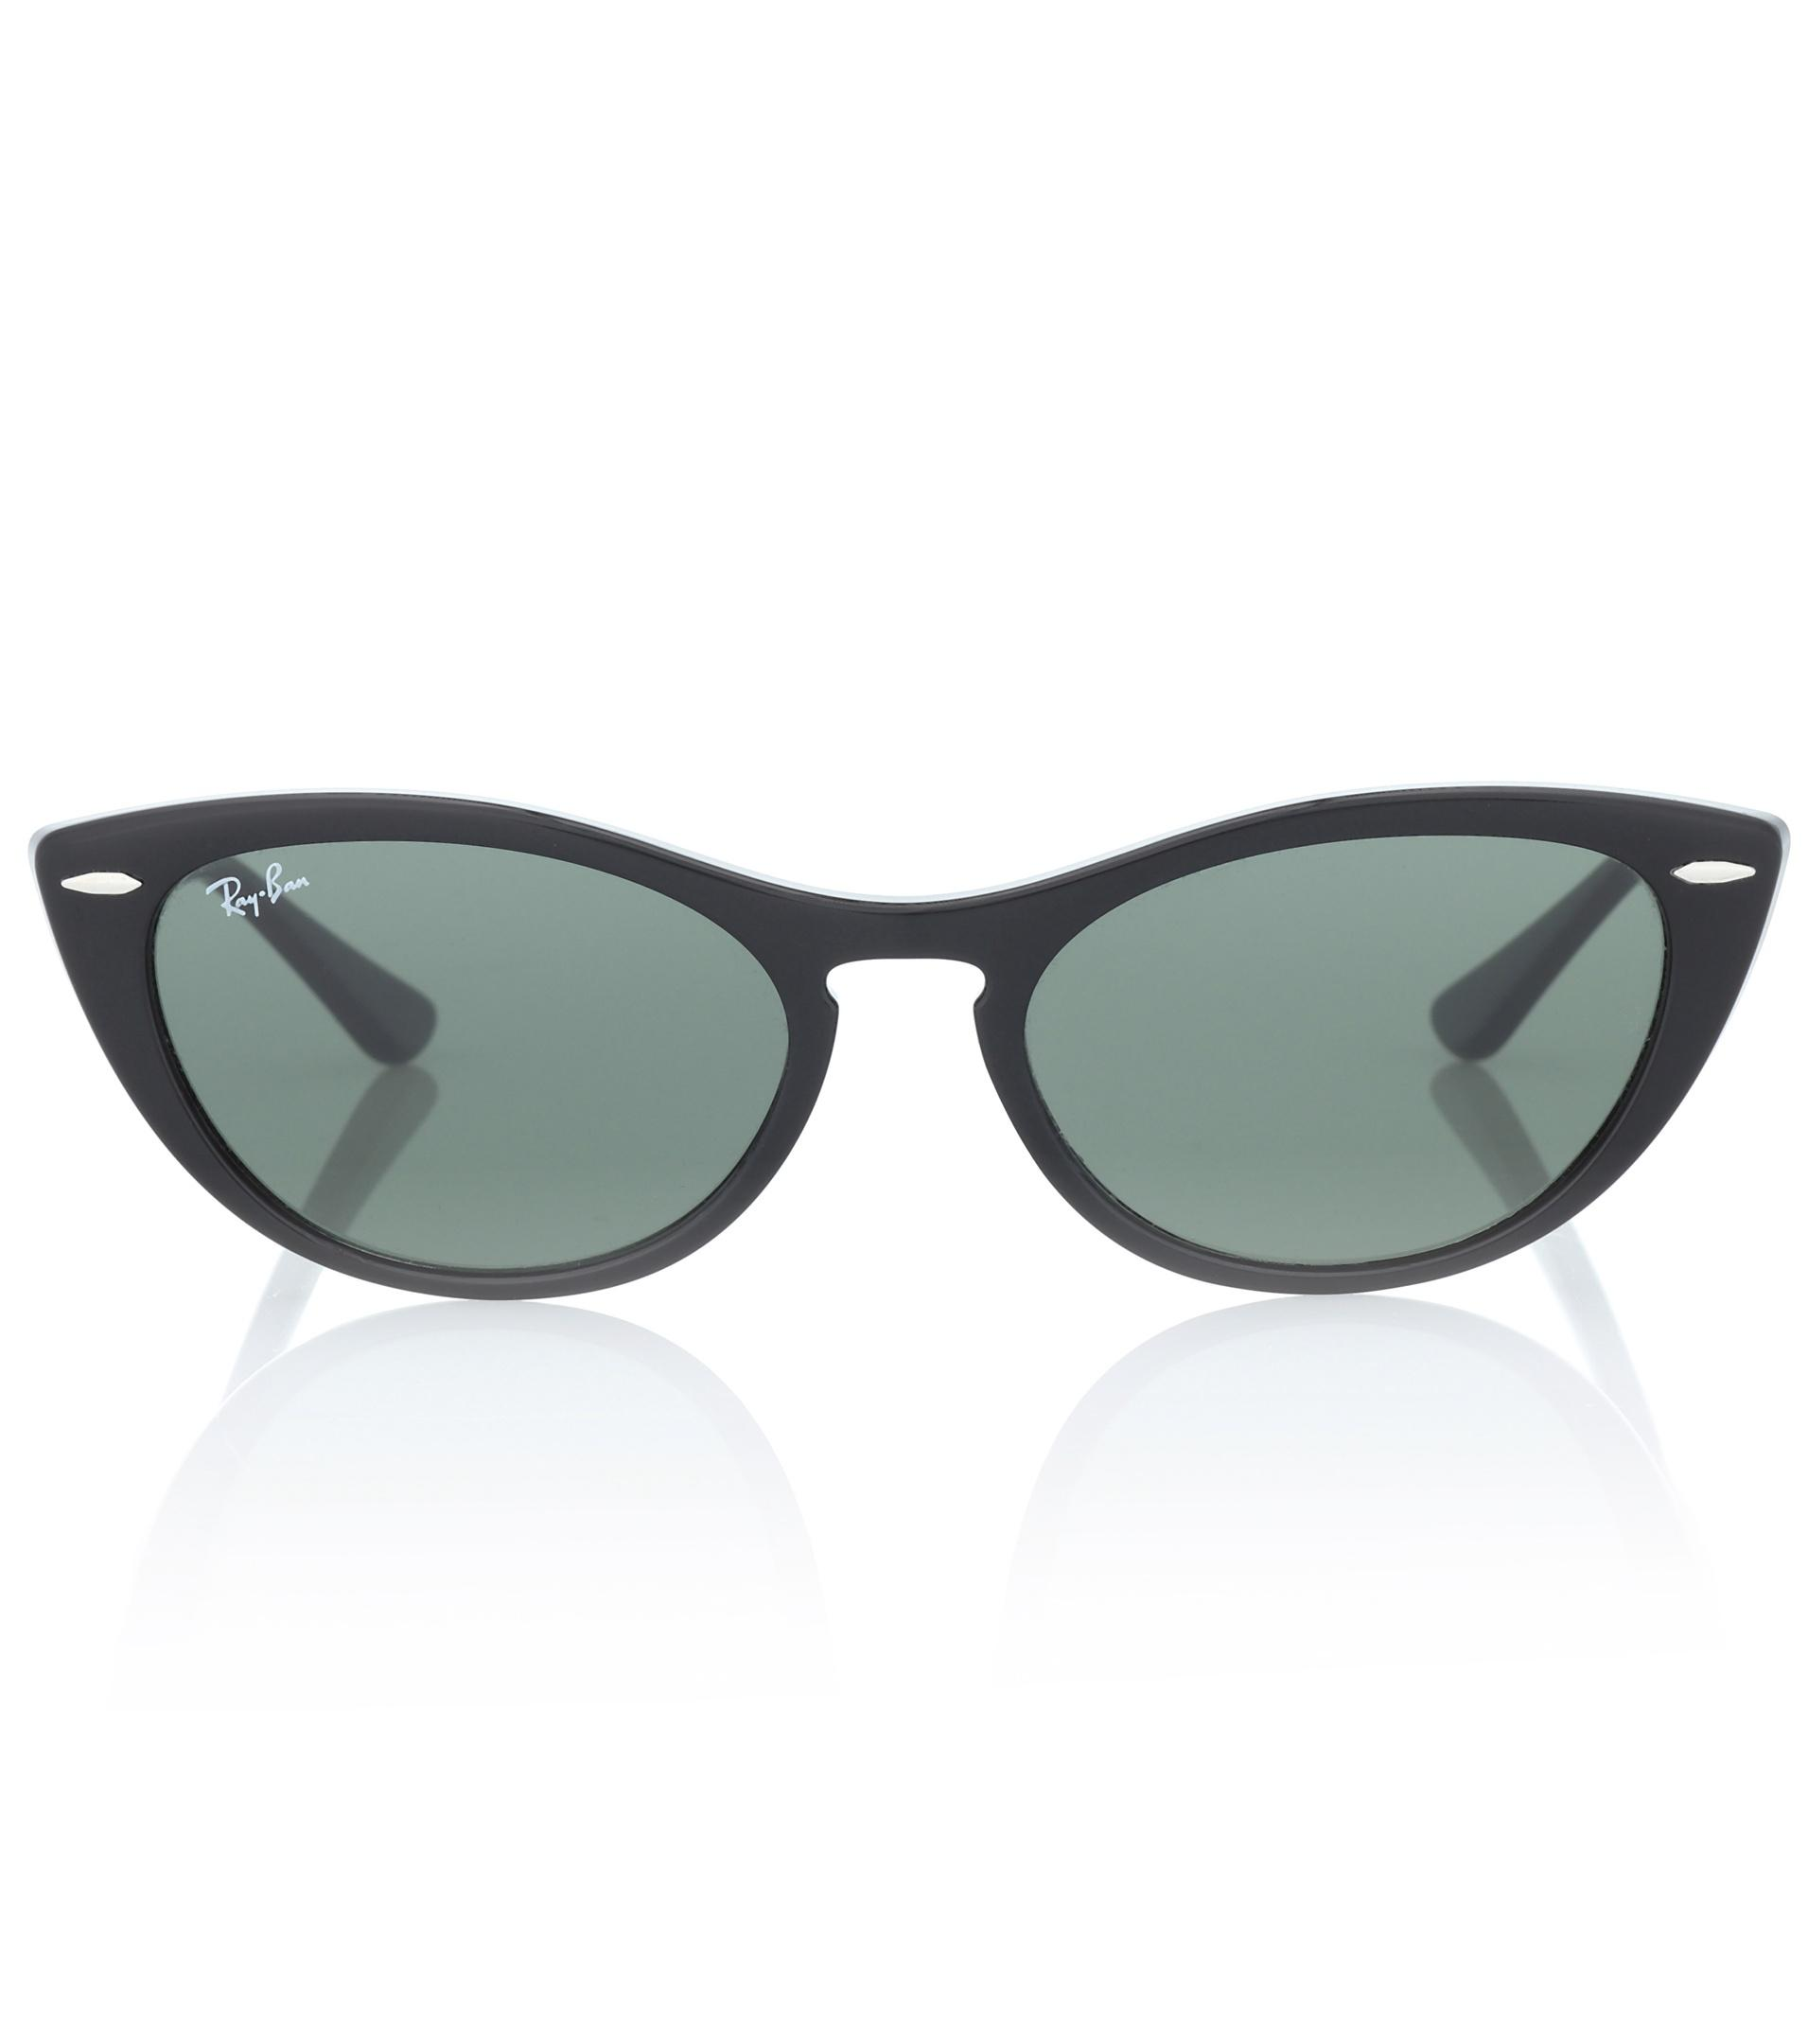 89dcac1ceb570 Ray-Ban Nina Cat-eye Acetate Sunglasses in Black - Lyst